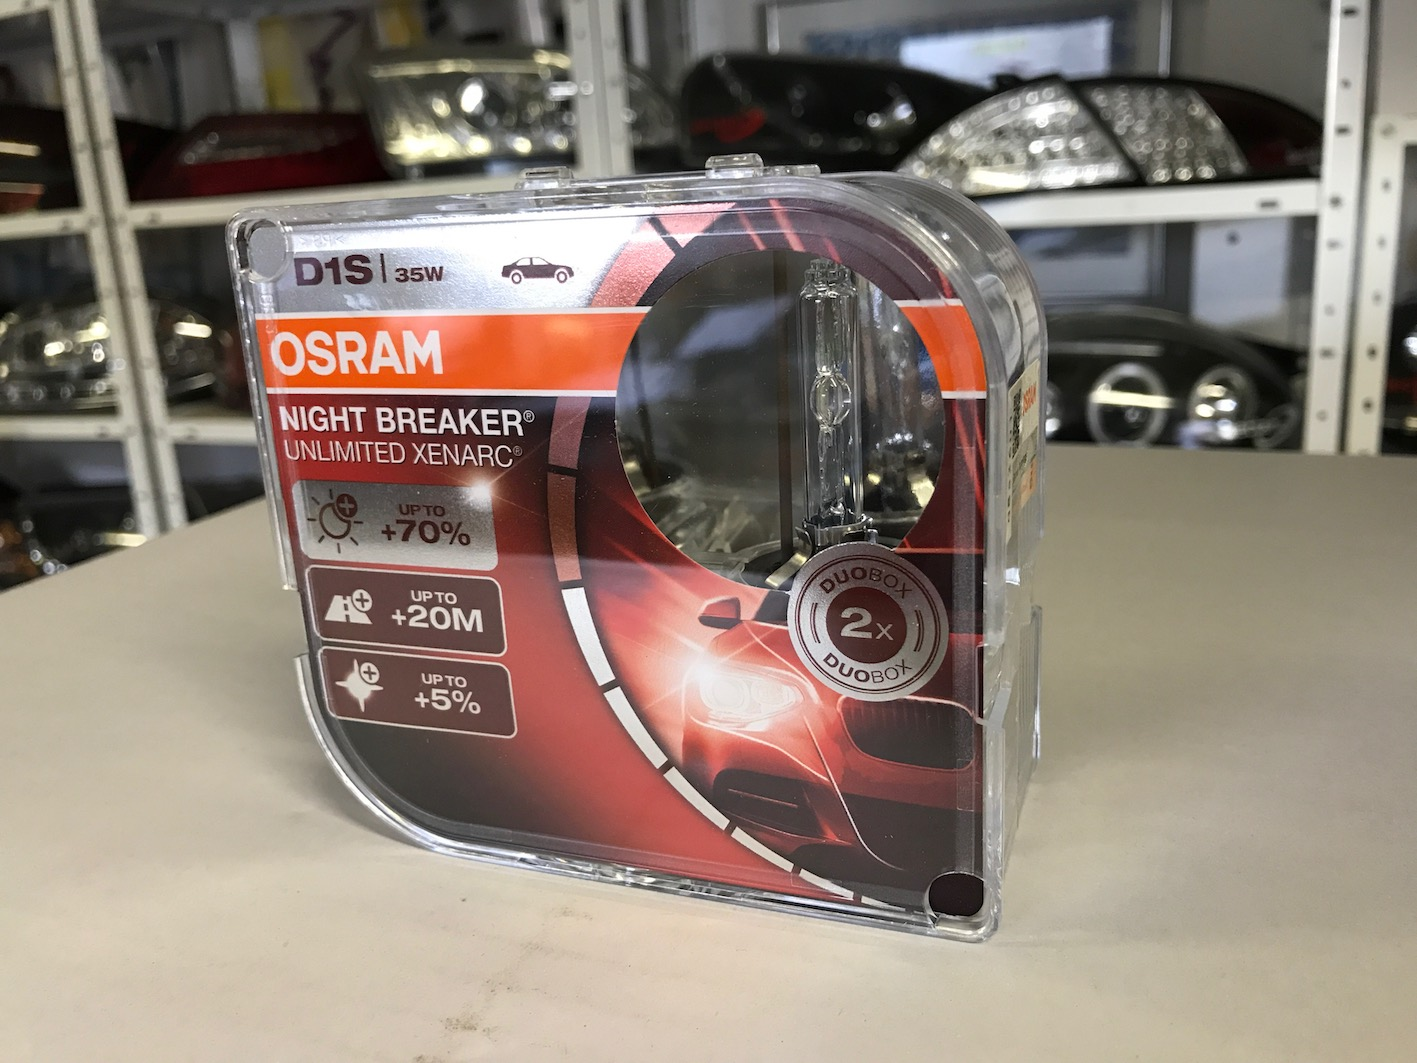 OSRAM XENON D1S 35W NIGHT BREAKER UNLIMITED XENARC DUO BOX